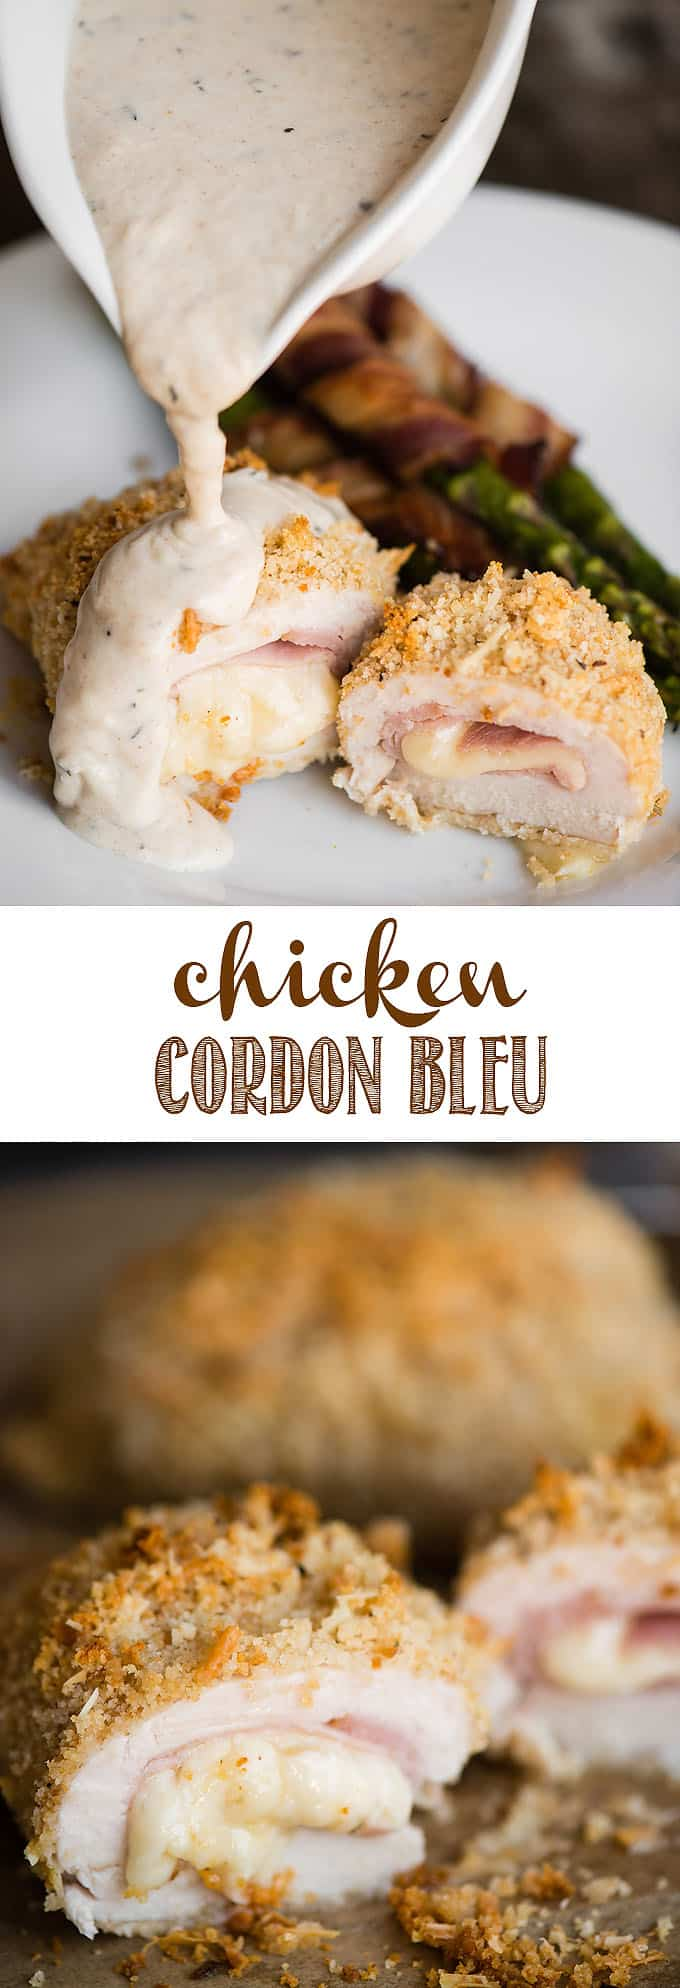 Chicken Cordon Bleu with Dijon Cream Sauce is an easy dinner you family will love. Tender boneless skinless chicken breasts are pounded thin, stuffed with swiss cheese and ham, coated with parmesan and bread crumbs, then baked to perfection. They are smothered in a flavorful cream sauce creating the perfect main dish! #chickencordonbleu #chicken #ham #cheese #creamsauce